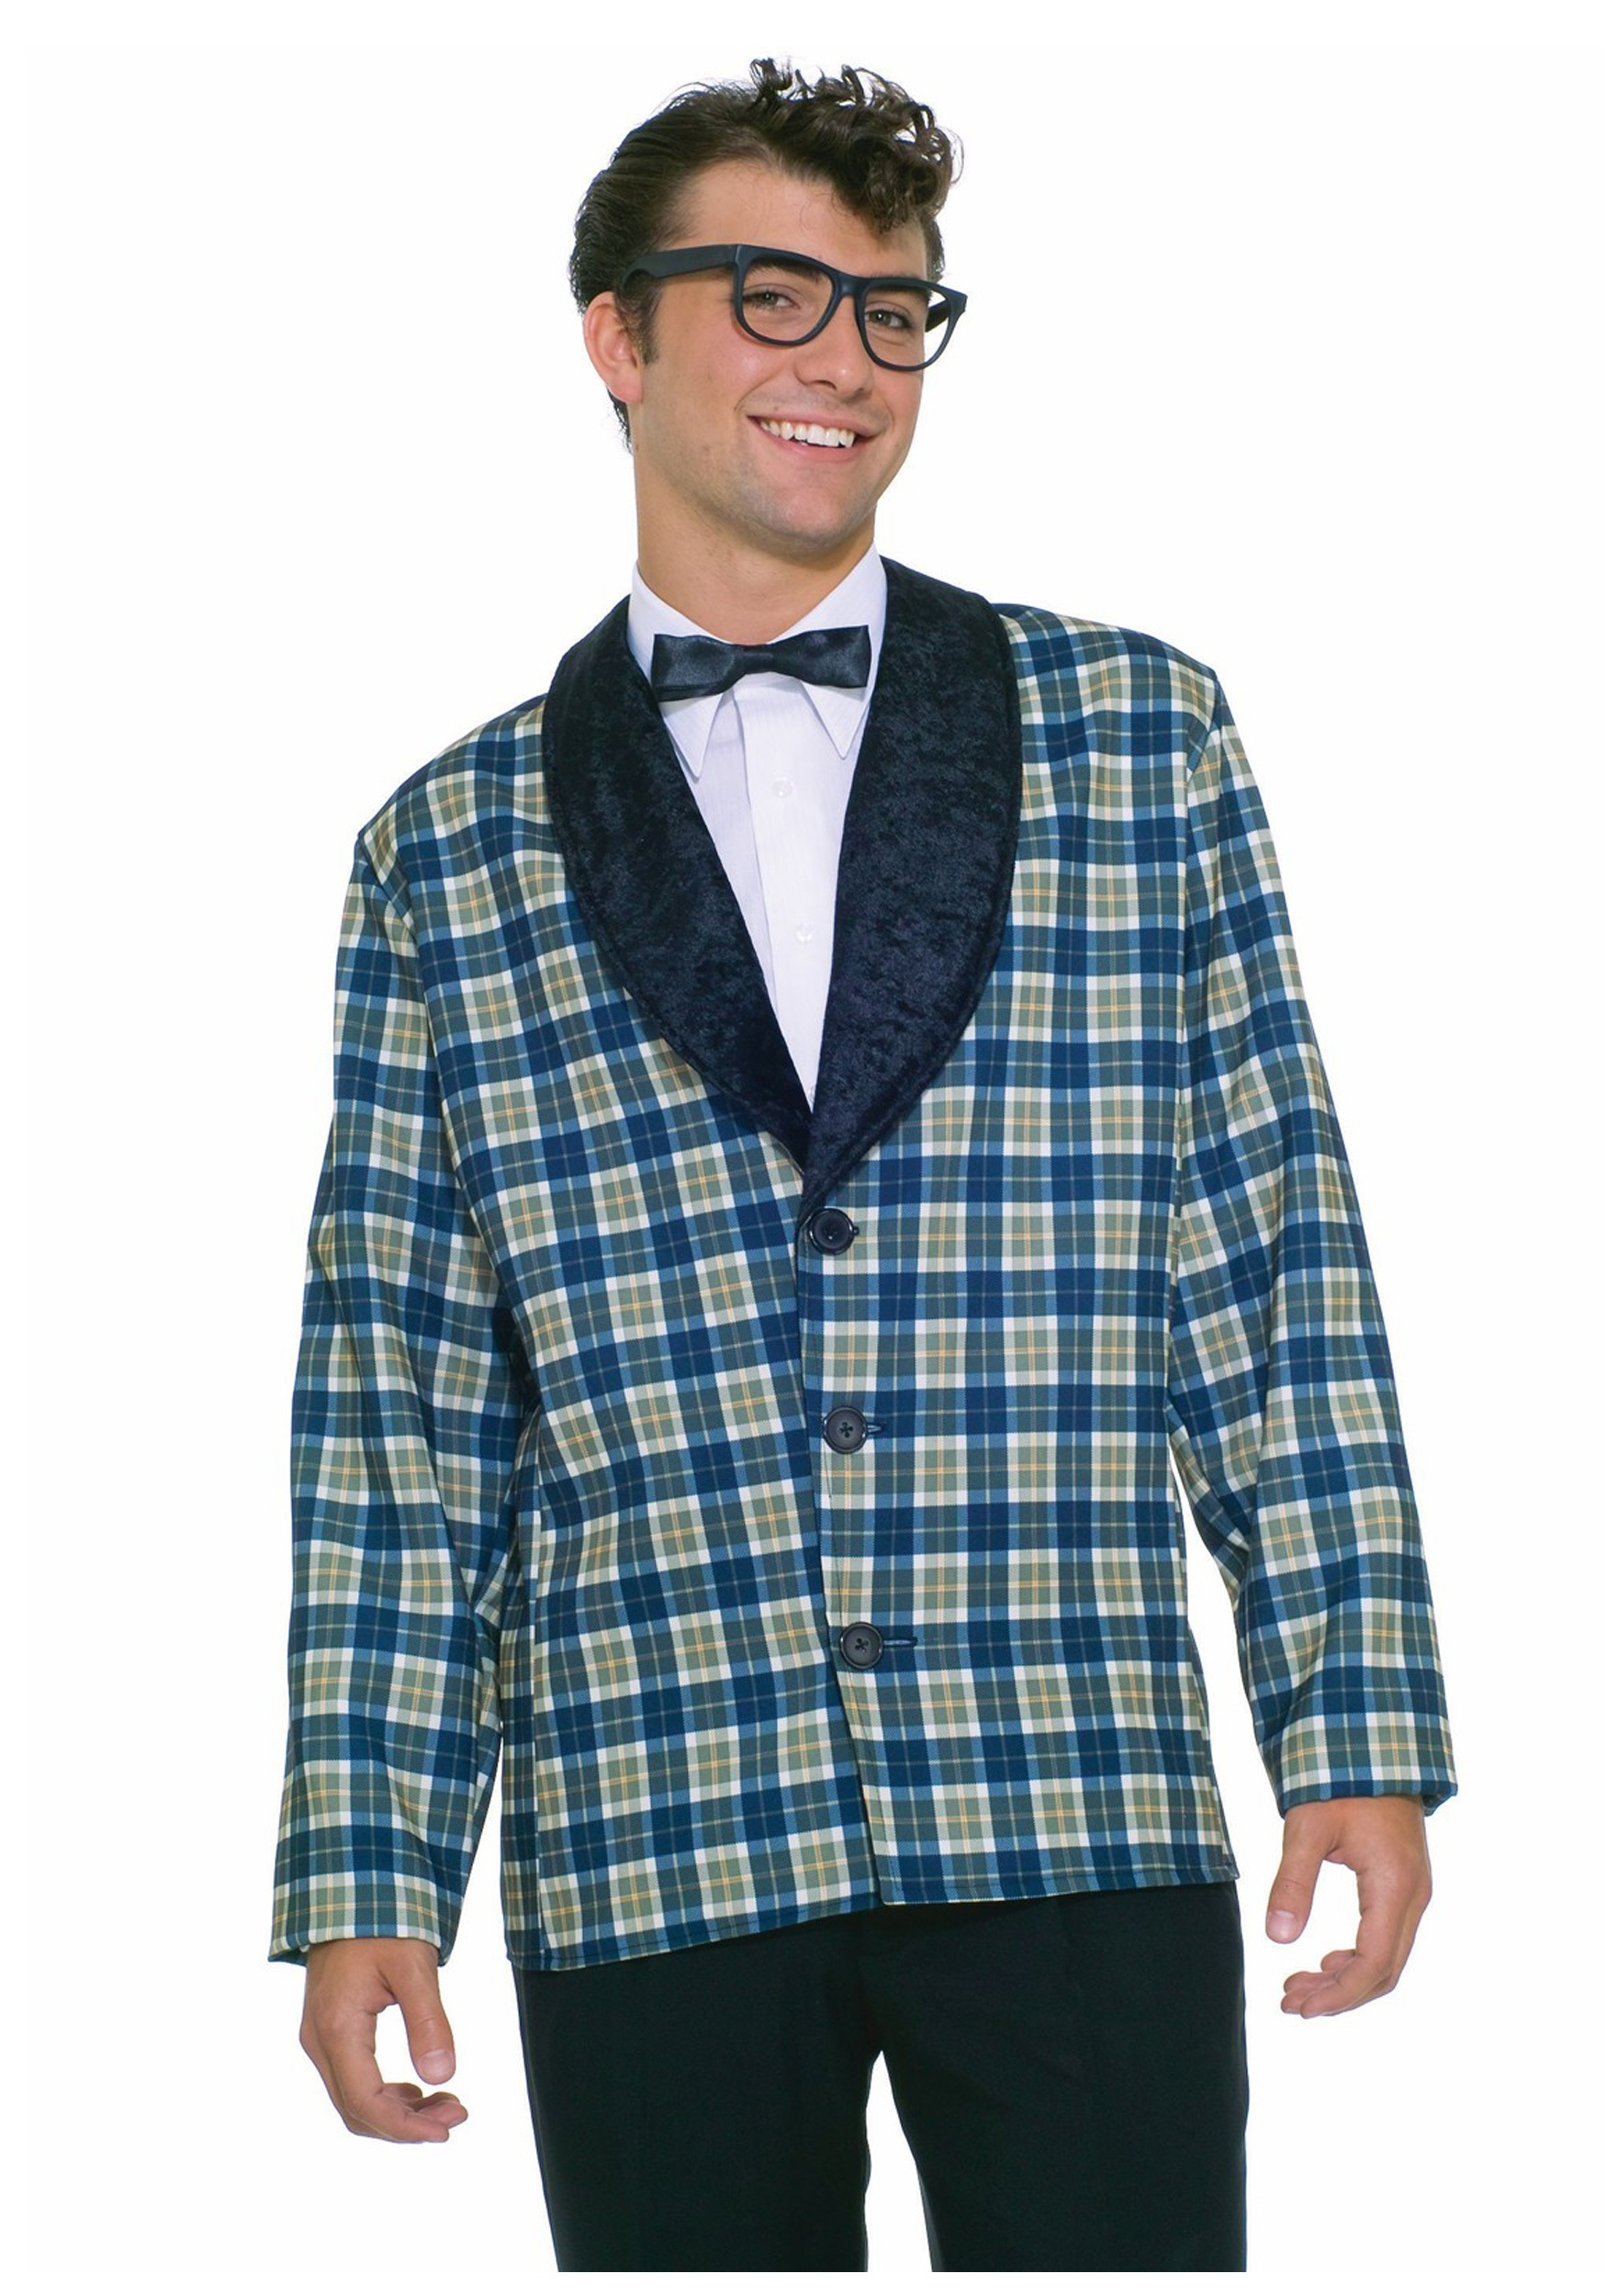 50s Good Buddy Costume  sc 1 st  Halloween Costume : 1950 costumes for men  - Germanpascual.Com